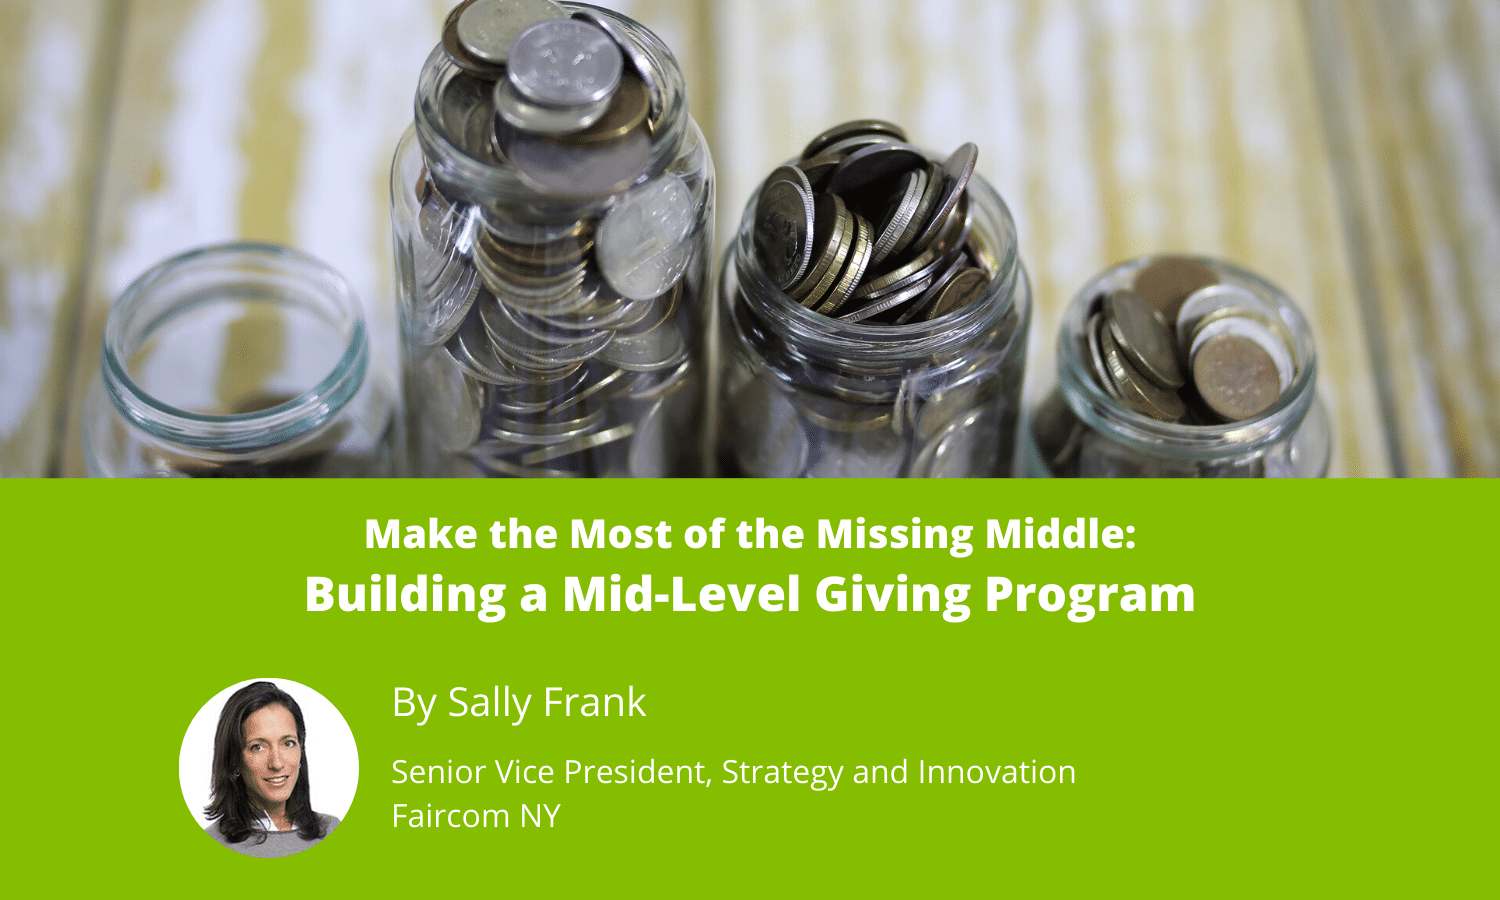 Building a Mid-Level Giving Program